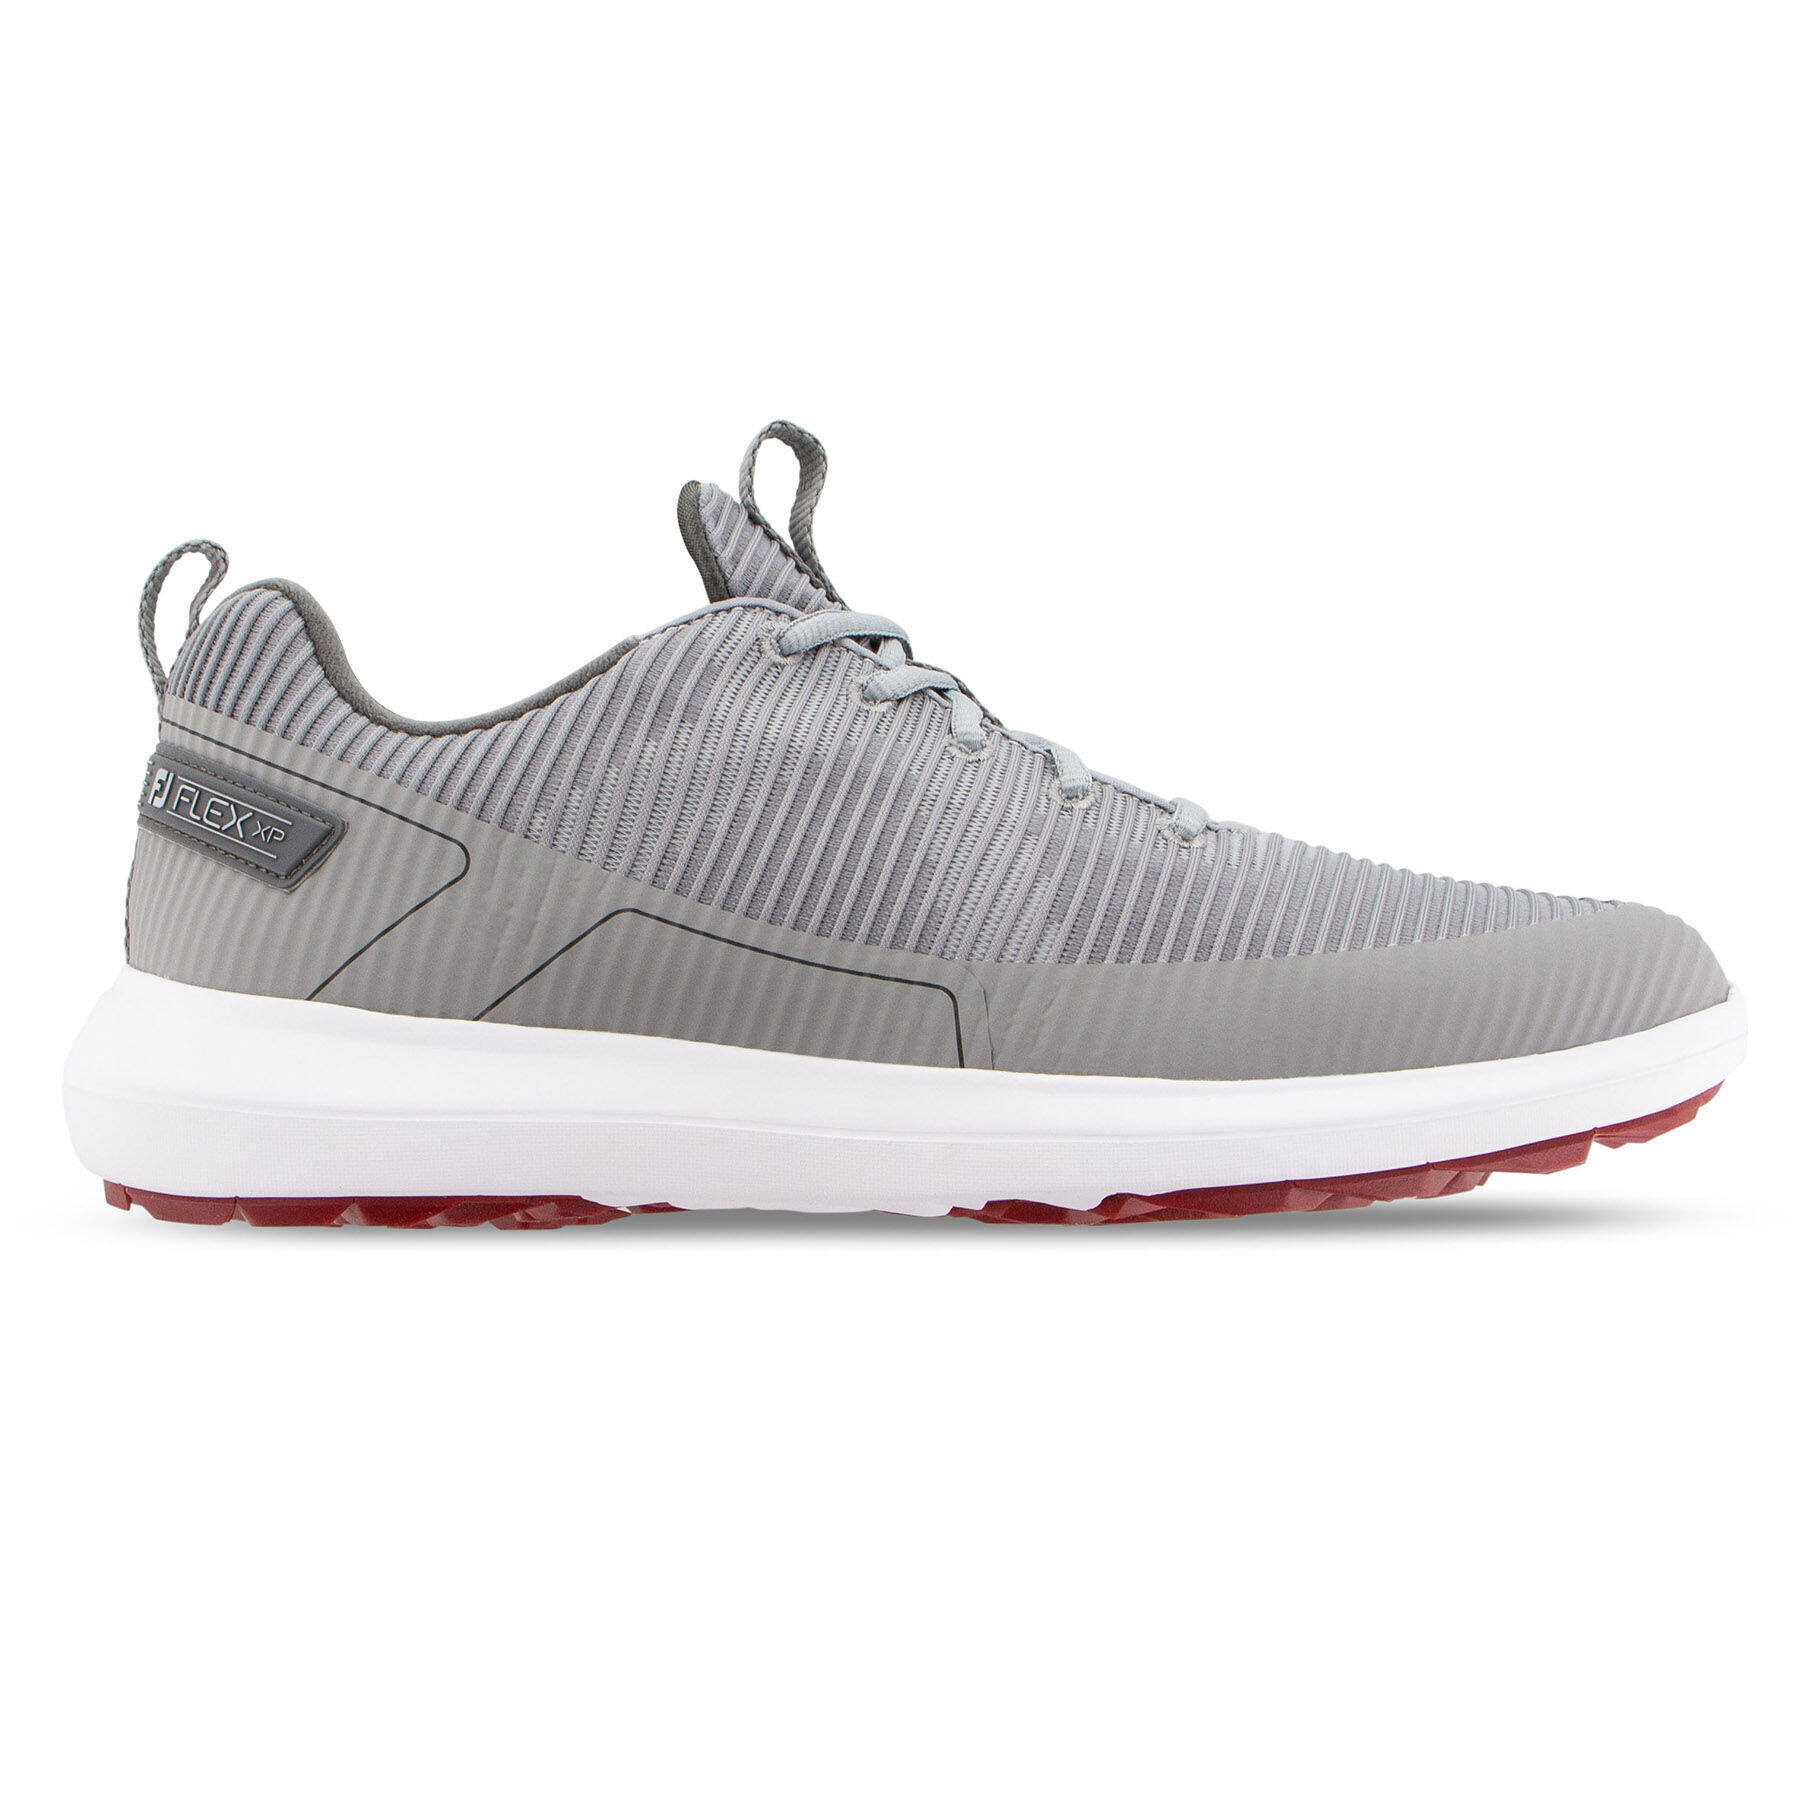 nike extra wide golf shoes